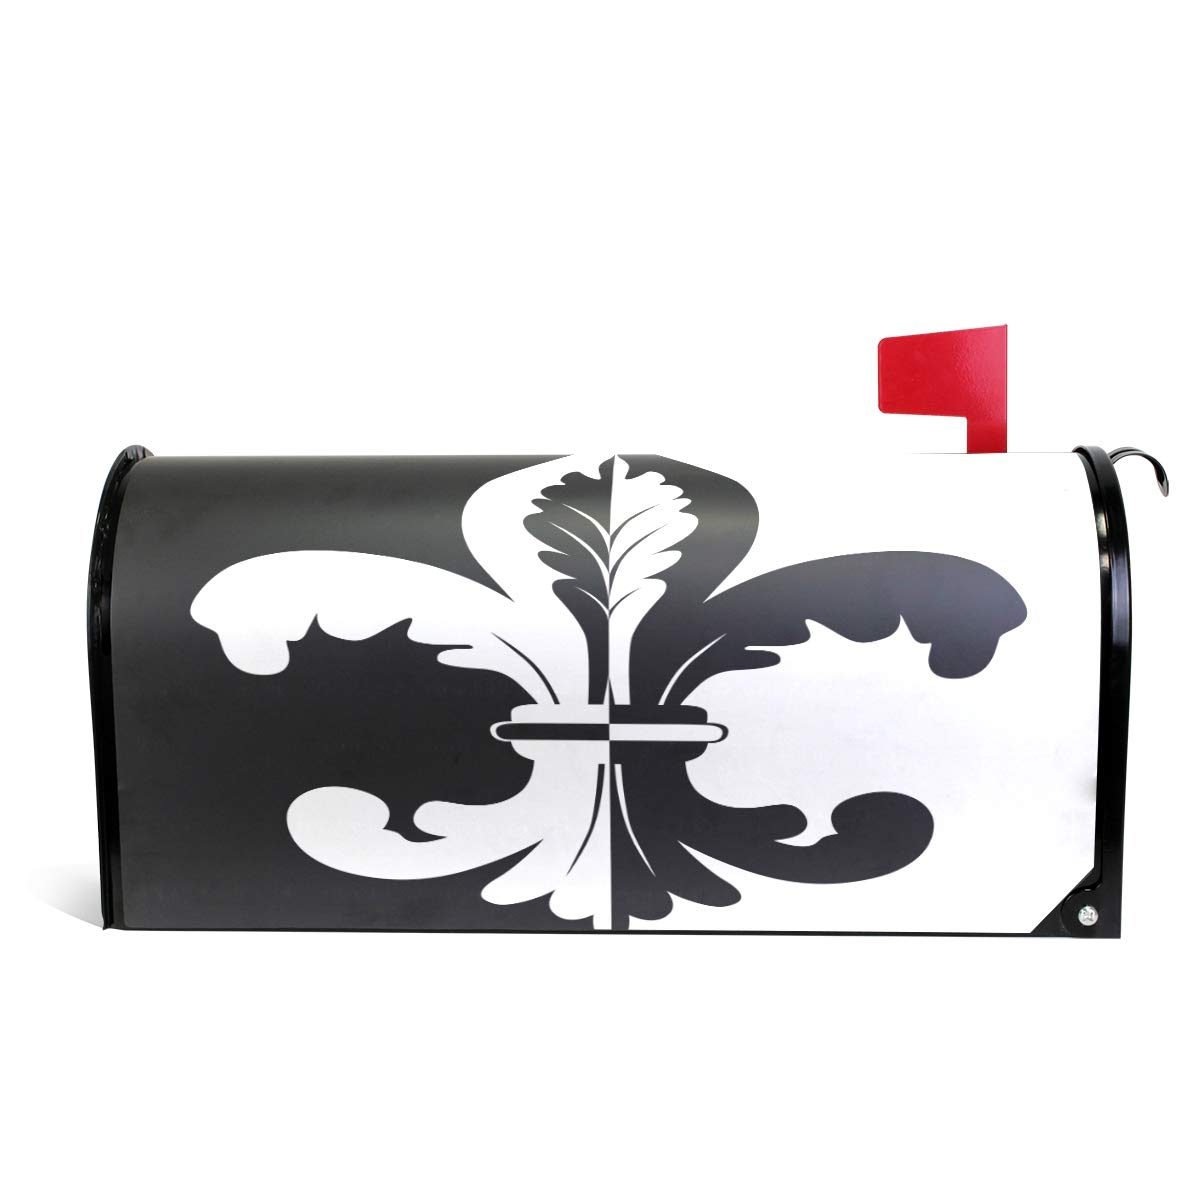 ZZKKO Black and White Fleur De Lis Mailbox Covers Magnetic Seasonal Colorful Pattern Home Houses Decorations,20.8x18 Inch Standard Size,Multicolor by ZZKKO